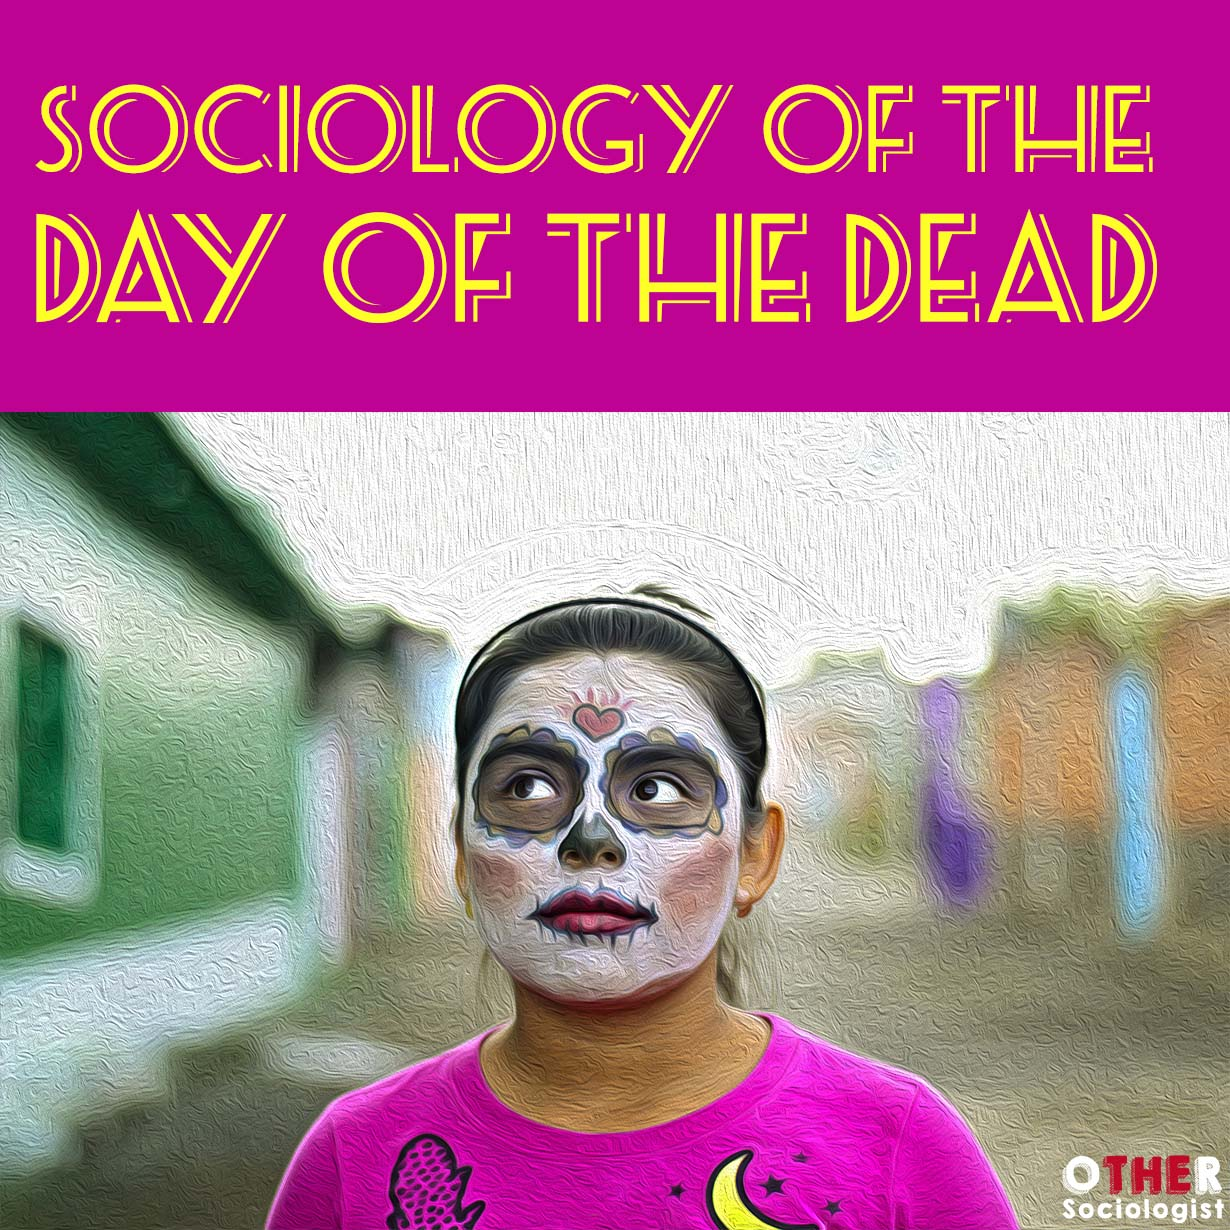 Sociology of the Day of the Dead